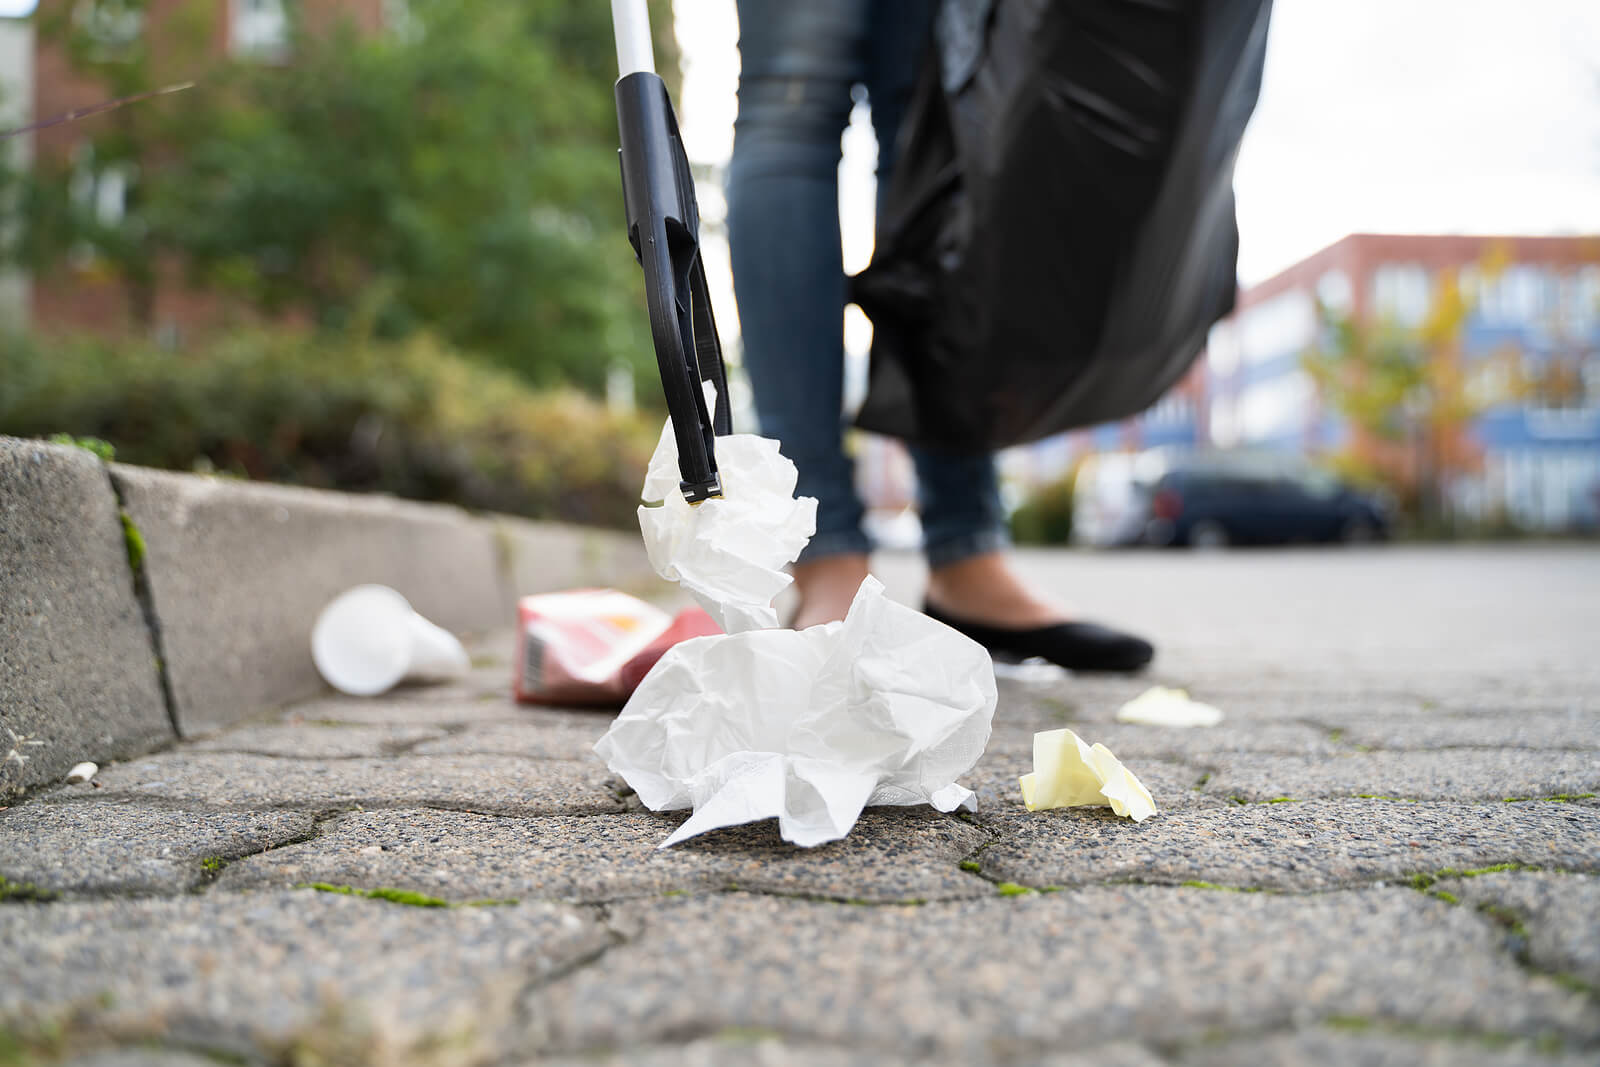 A street-level view of a woman litter-picking rubbish in the street